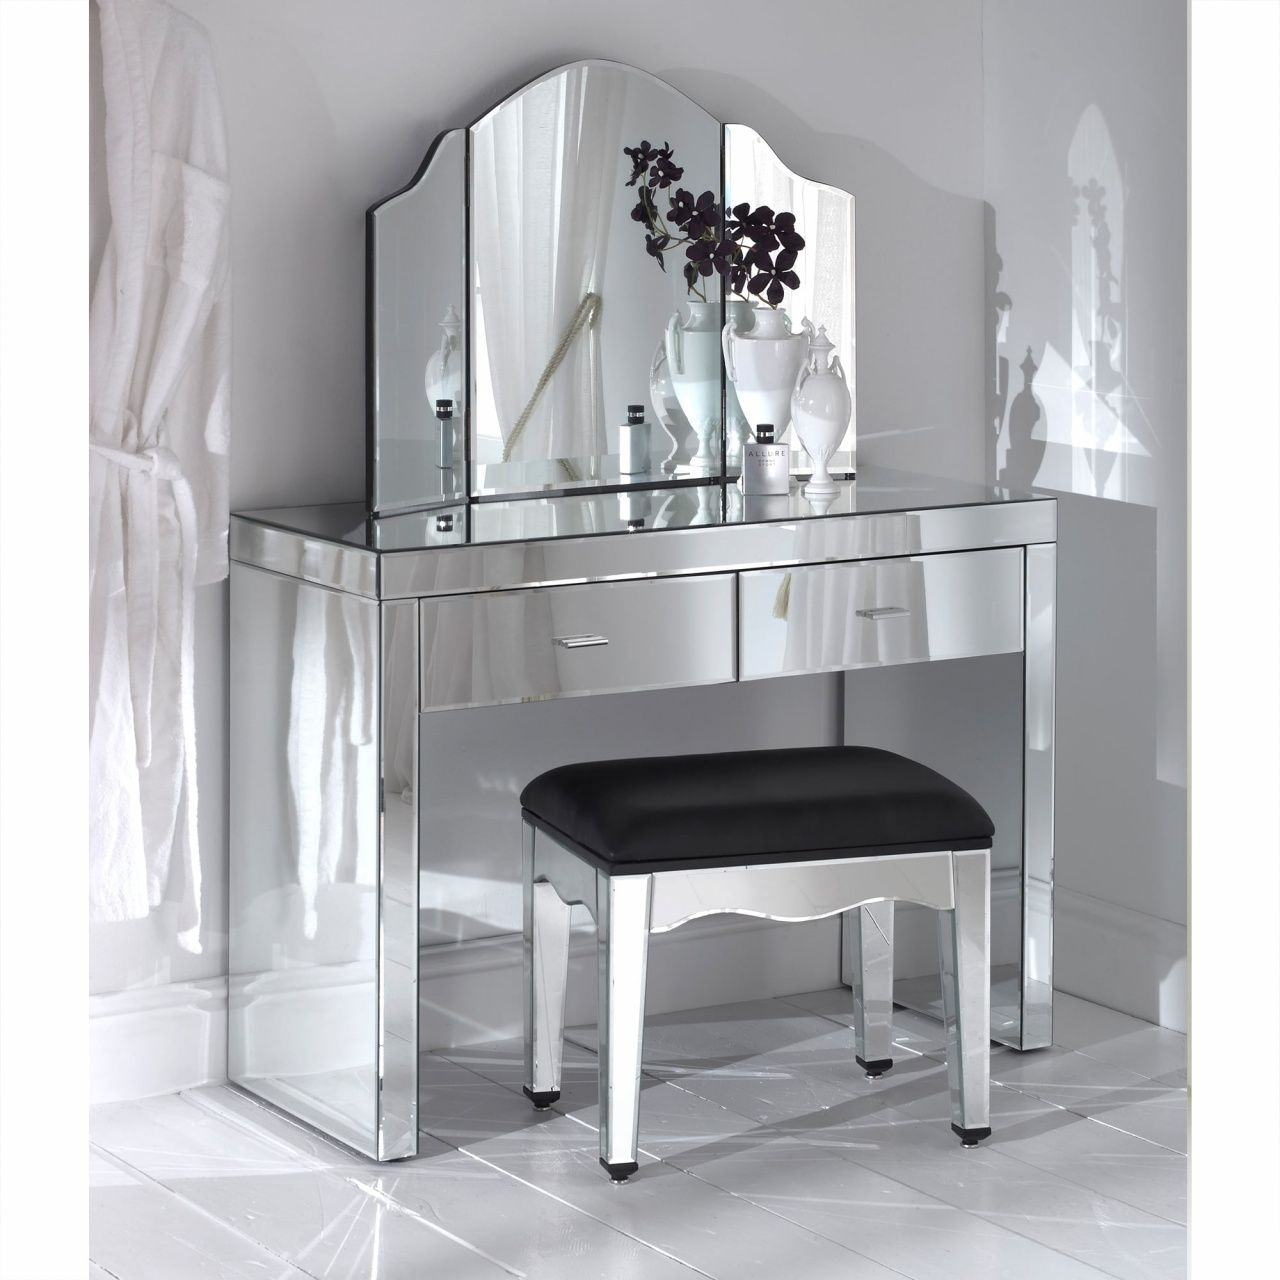 Glass mirror vanity table rustic home office furniture check more